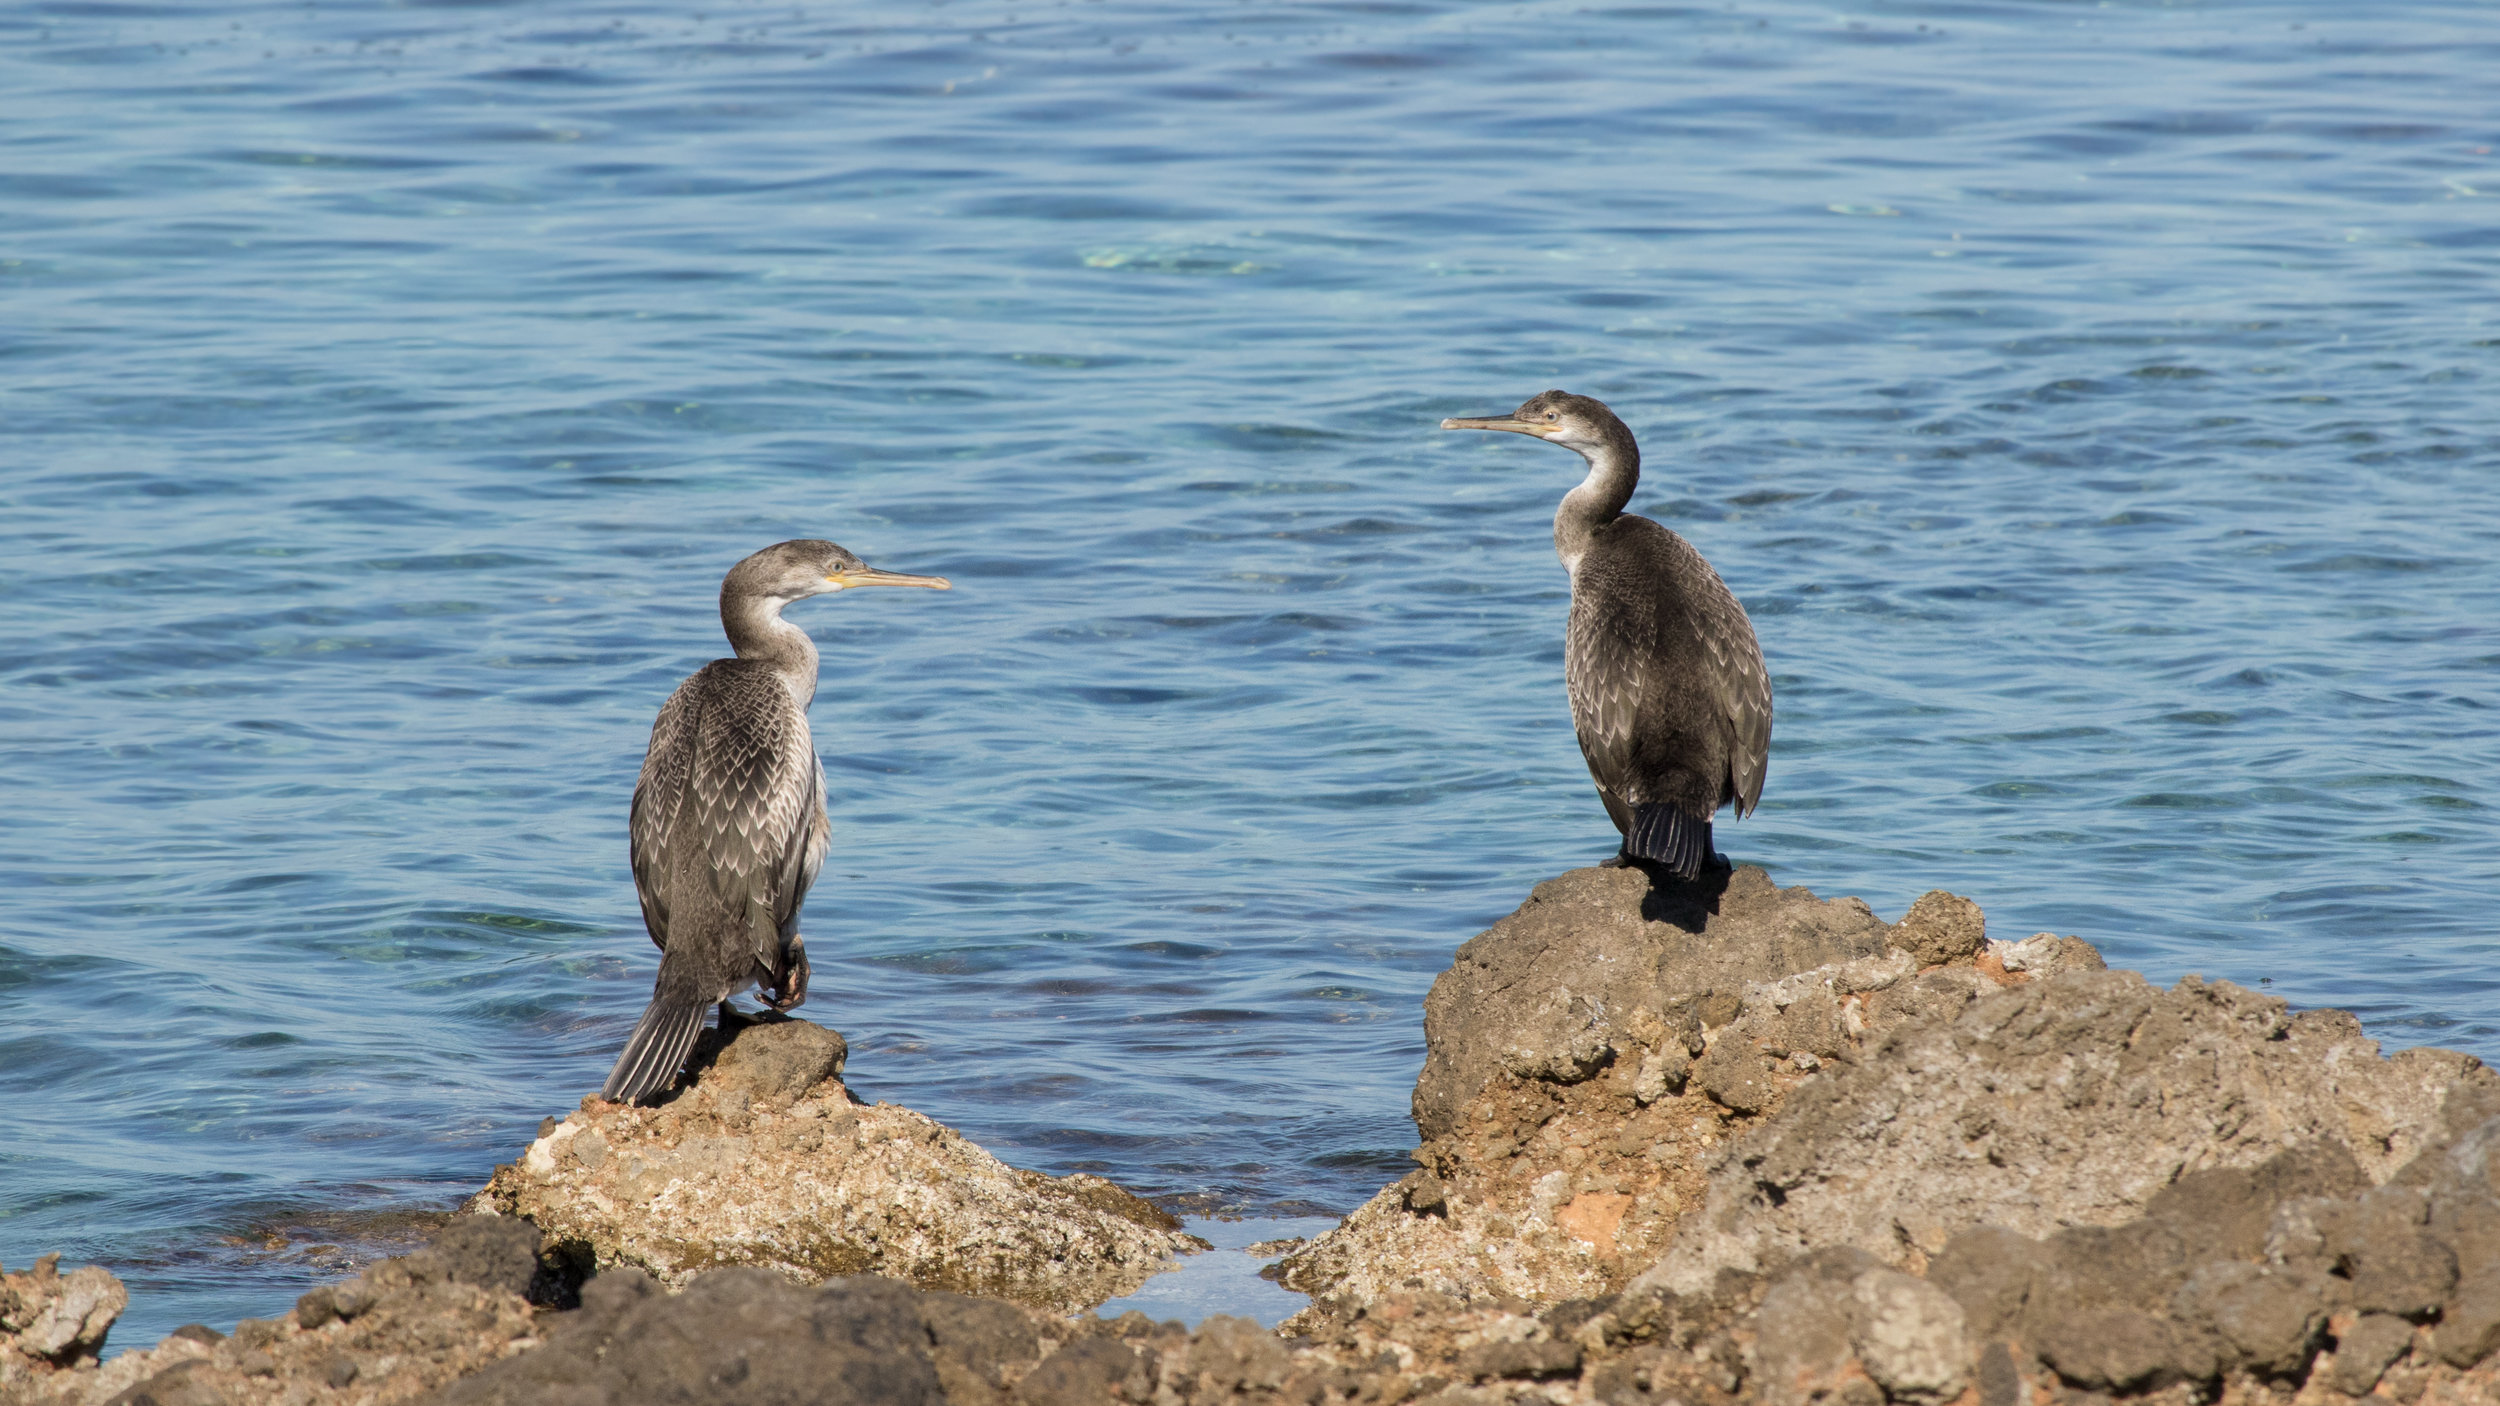 European Shags (Phalacrocorax aristotelis) in Colonia de Sant Pere, Spain. May 2015. Not baited. Not called in.